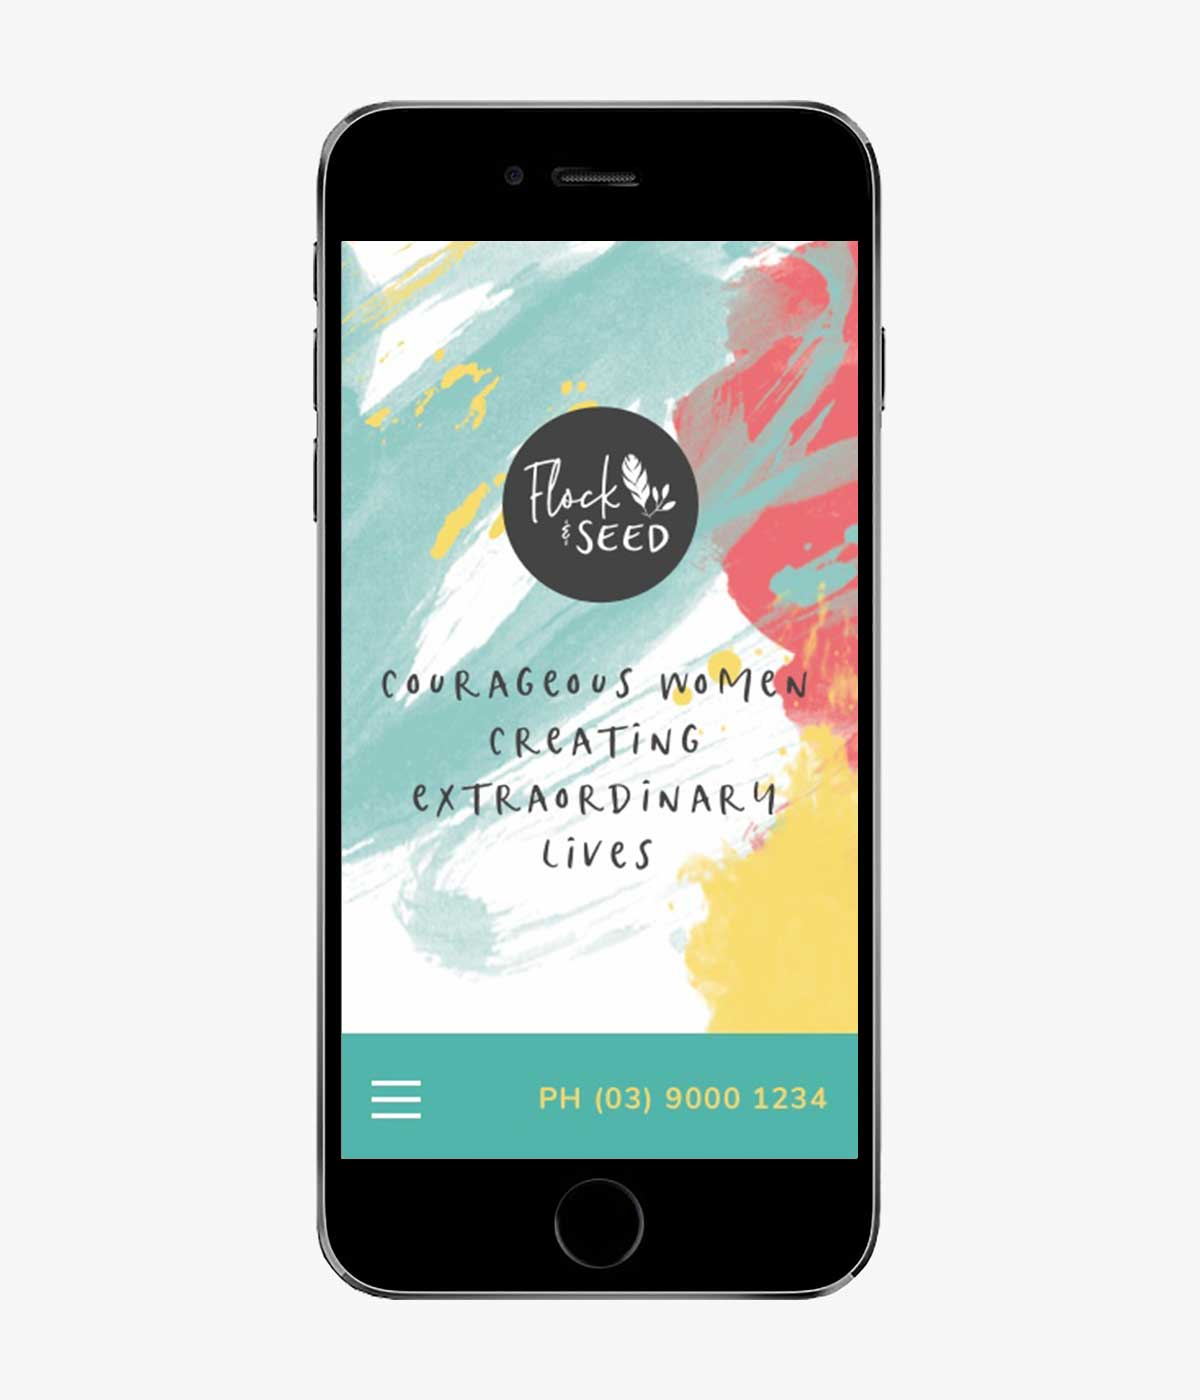 Flock & Seed responsive website design on iPhone in portrait view